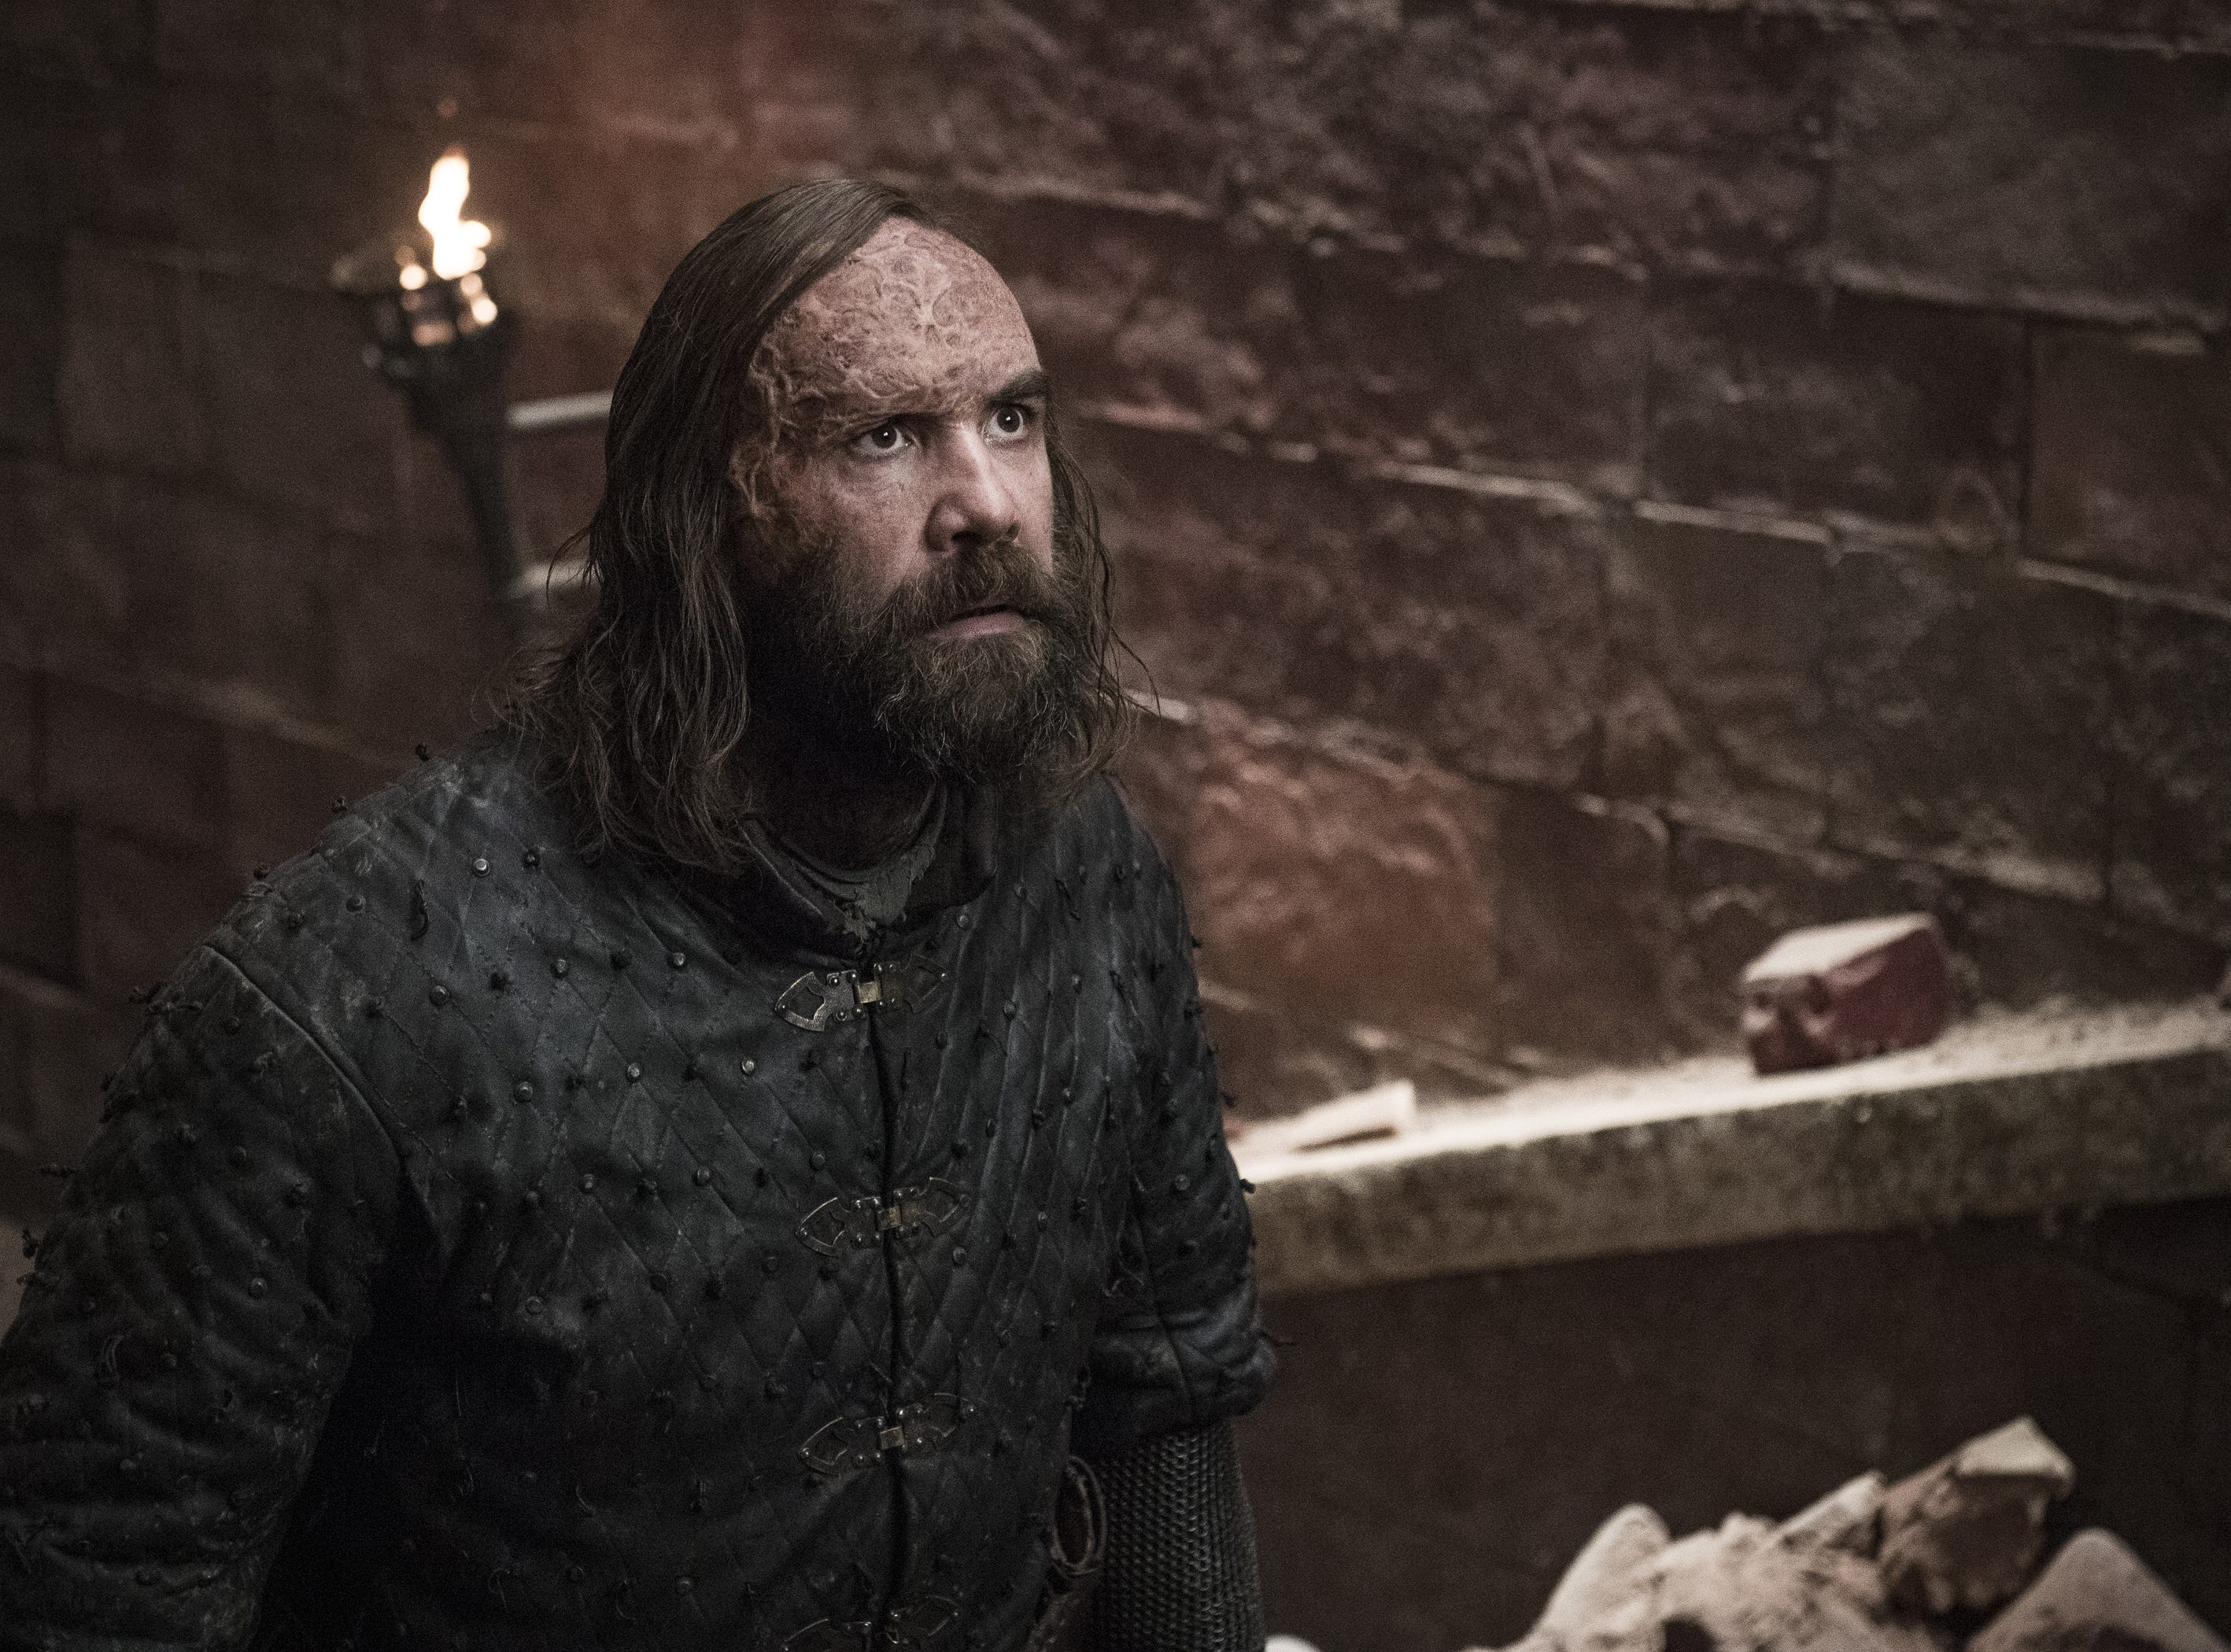 Sandor 'The Hound' Clegane (Rory McCann) prepares to take on his brother, 'The Mountain,' in the much-awaited Cleganebowl.